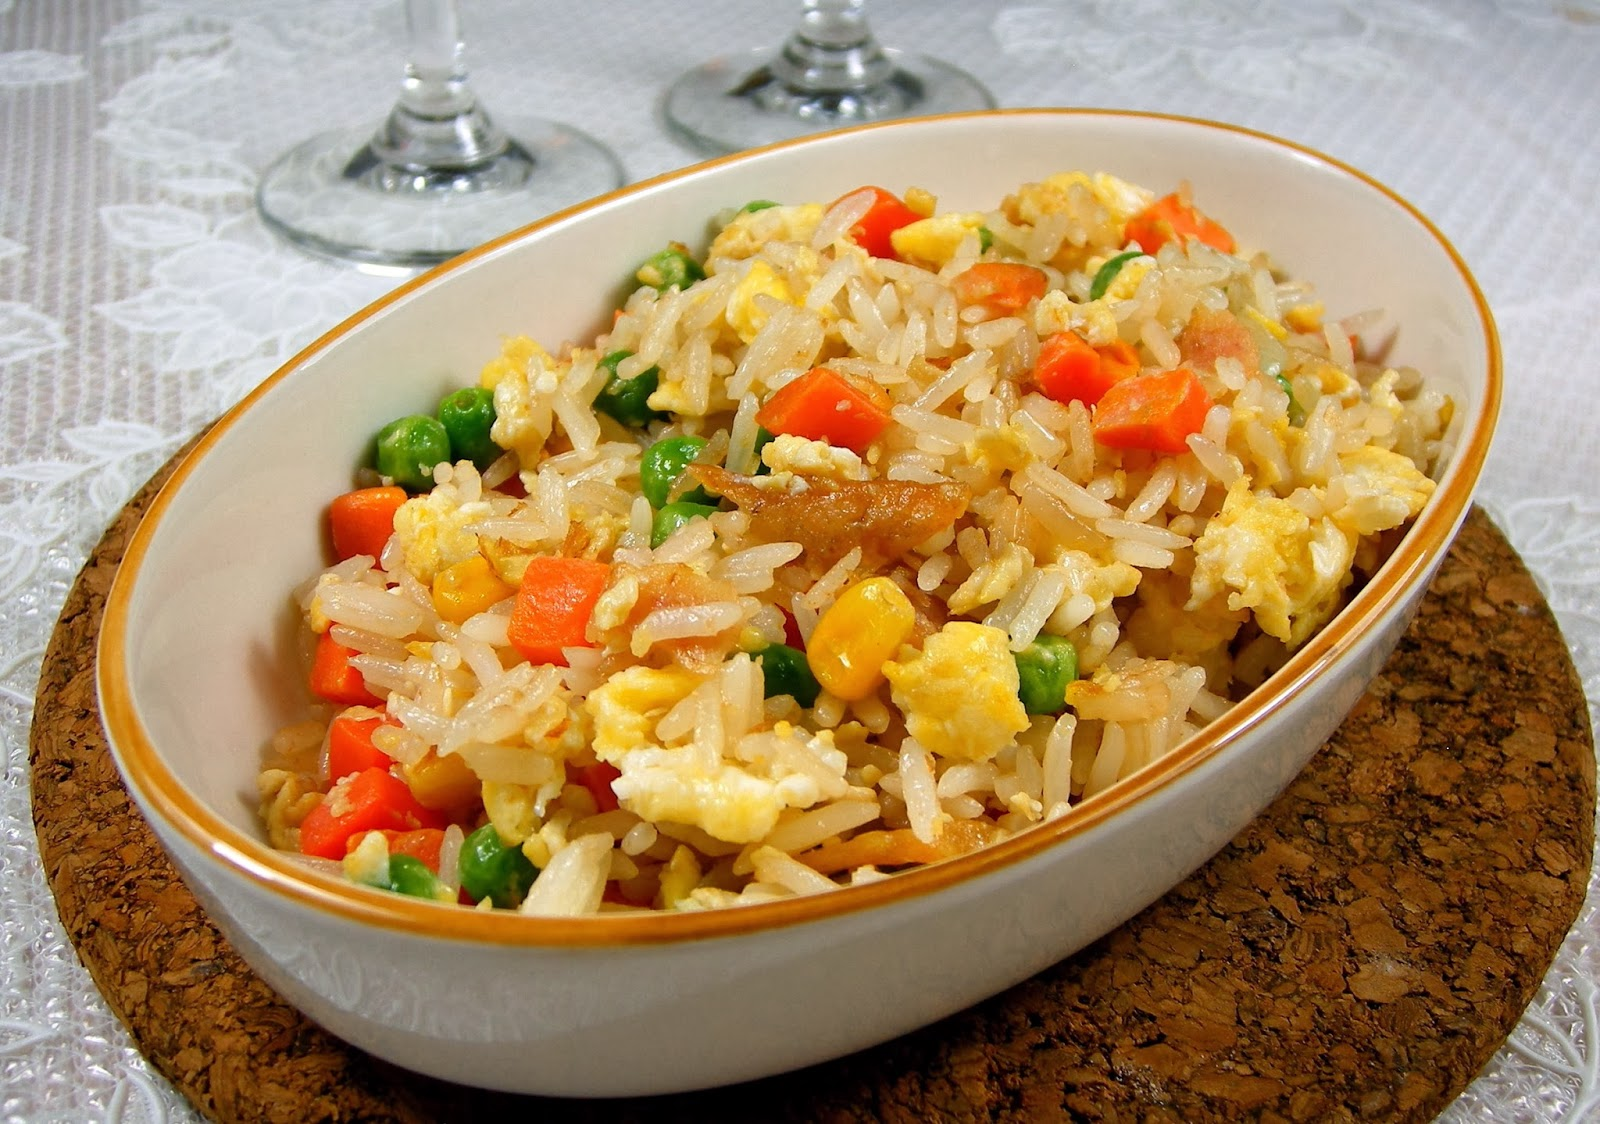 http://www.evyfoodlover.com/2012/04/fried-rice-with-salted-fish.html